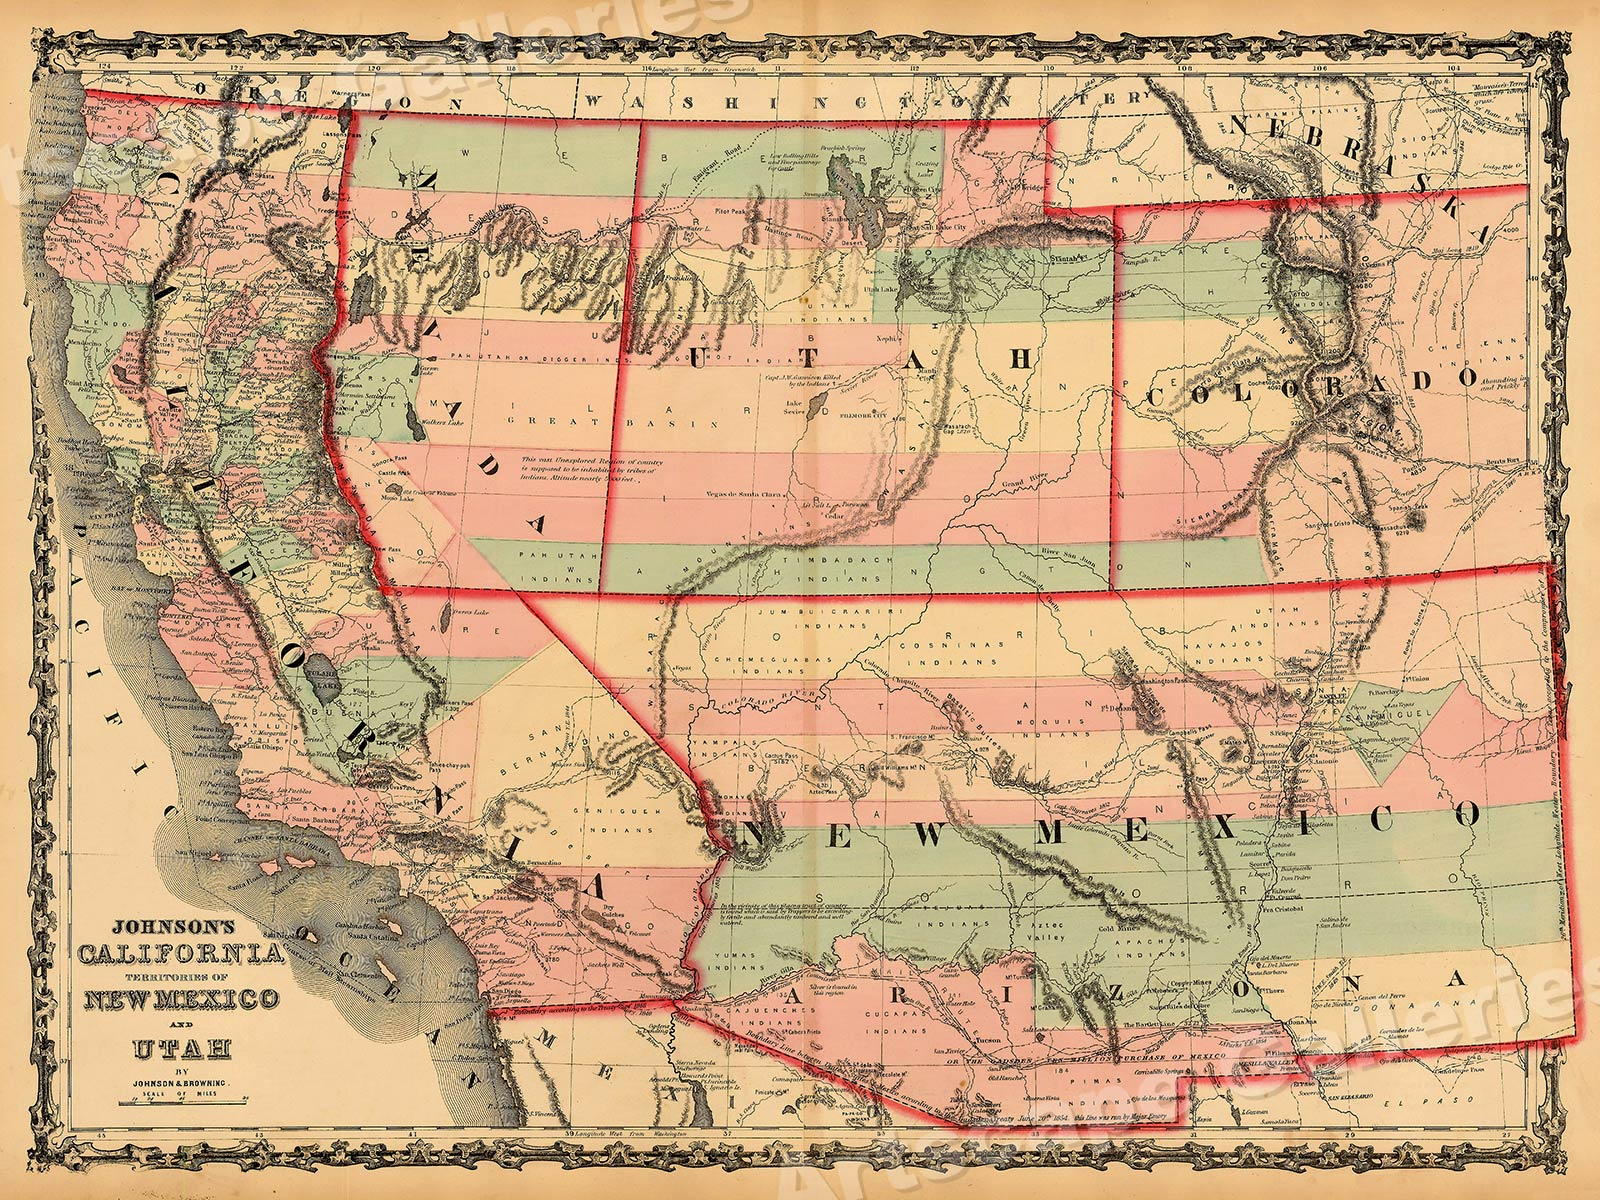 Details about 1861 Johnson's Map of California Historic Vintage Style  Western Wall Map - 24x32